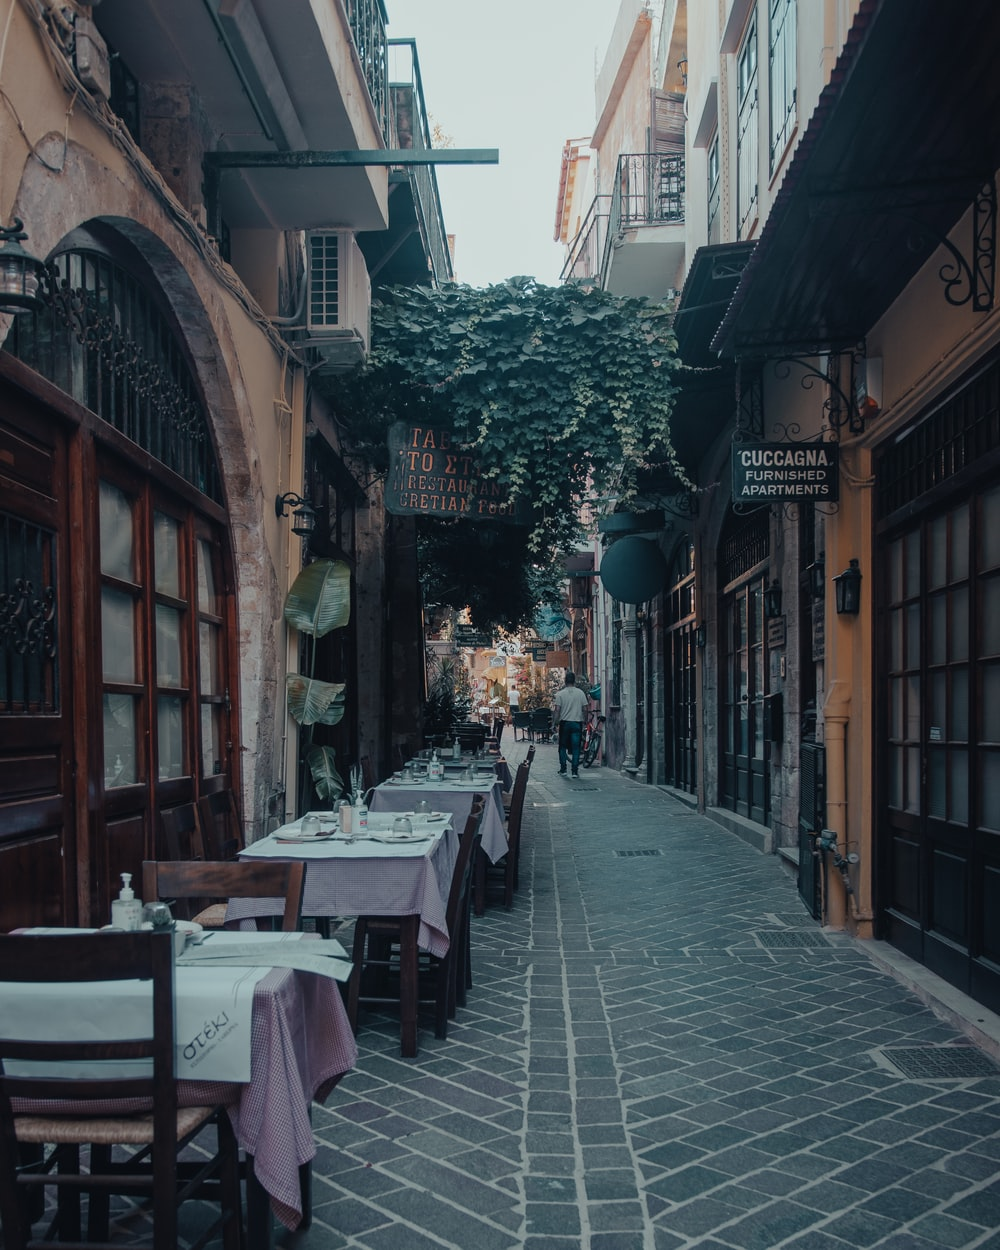 brown wooden table and chairs set on street during daytime